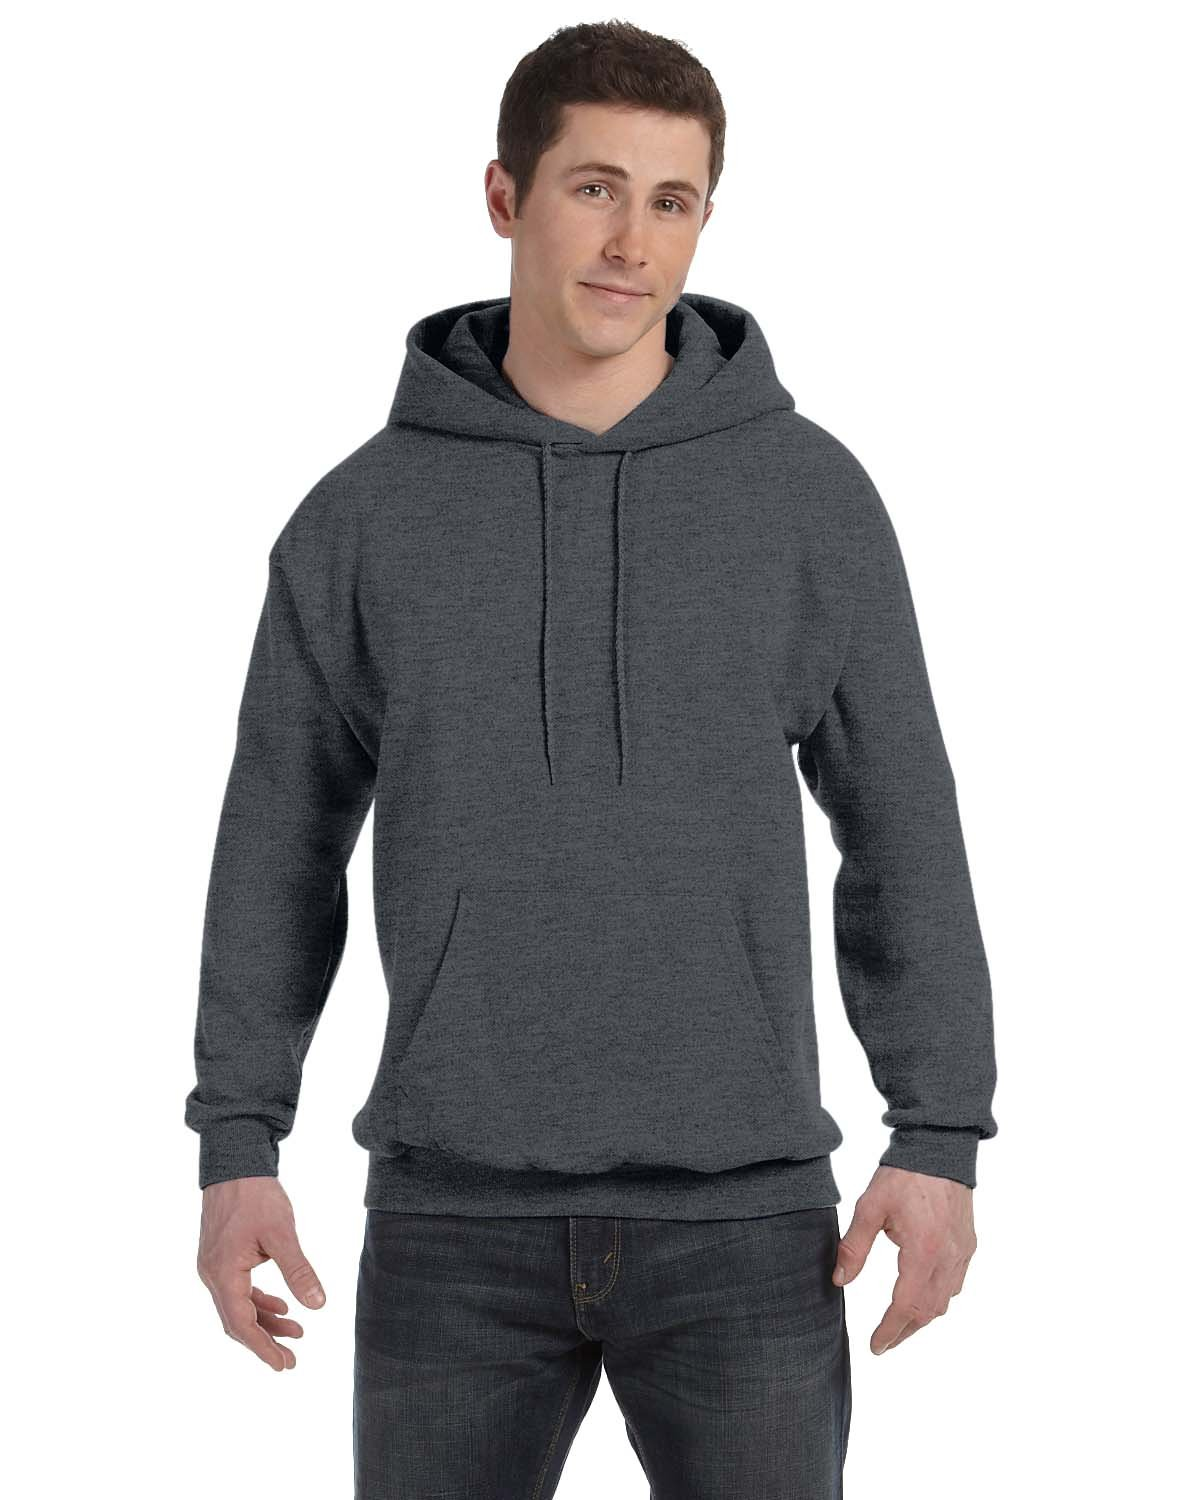 Hanes Unisex Ecosmart® 50/50 Pullover Hooded Sweatshirt CHARCOAL HEATHER